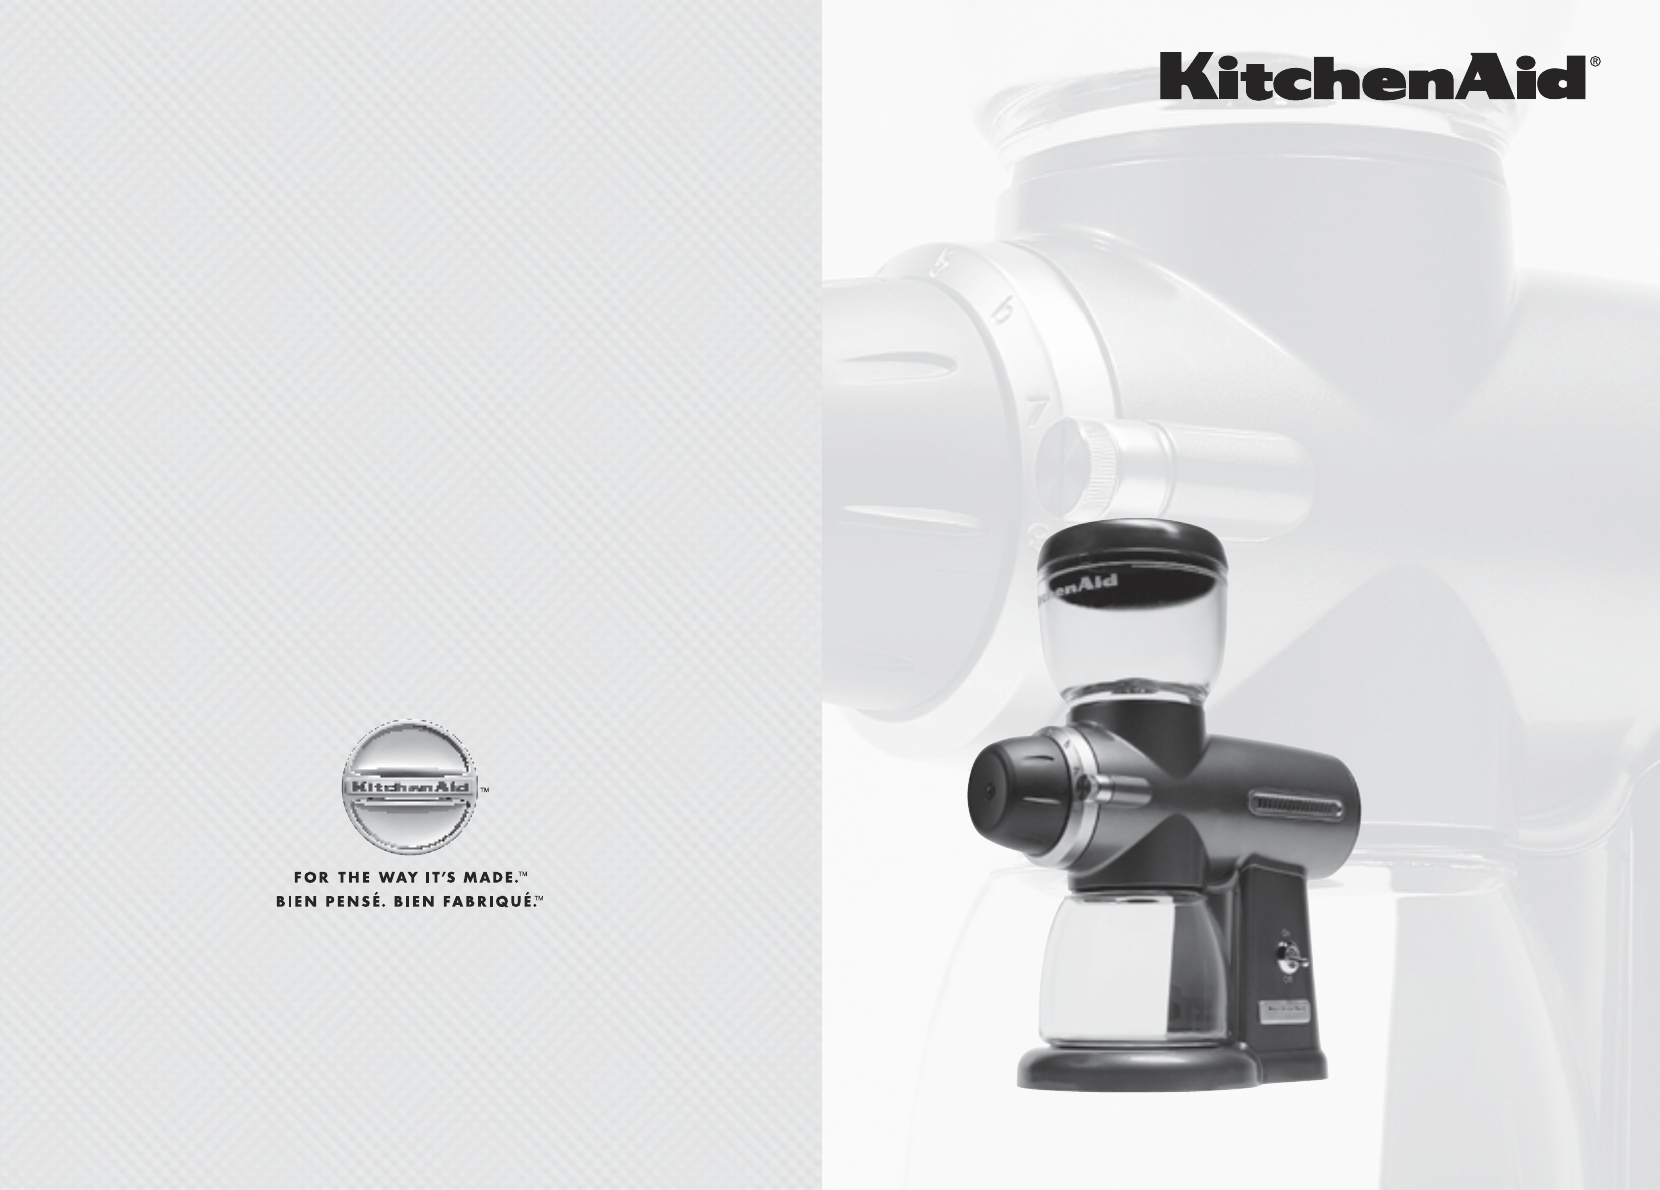 KitchenAid Coffee Grinder KPCG100 User Guide ManualsOnline.com